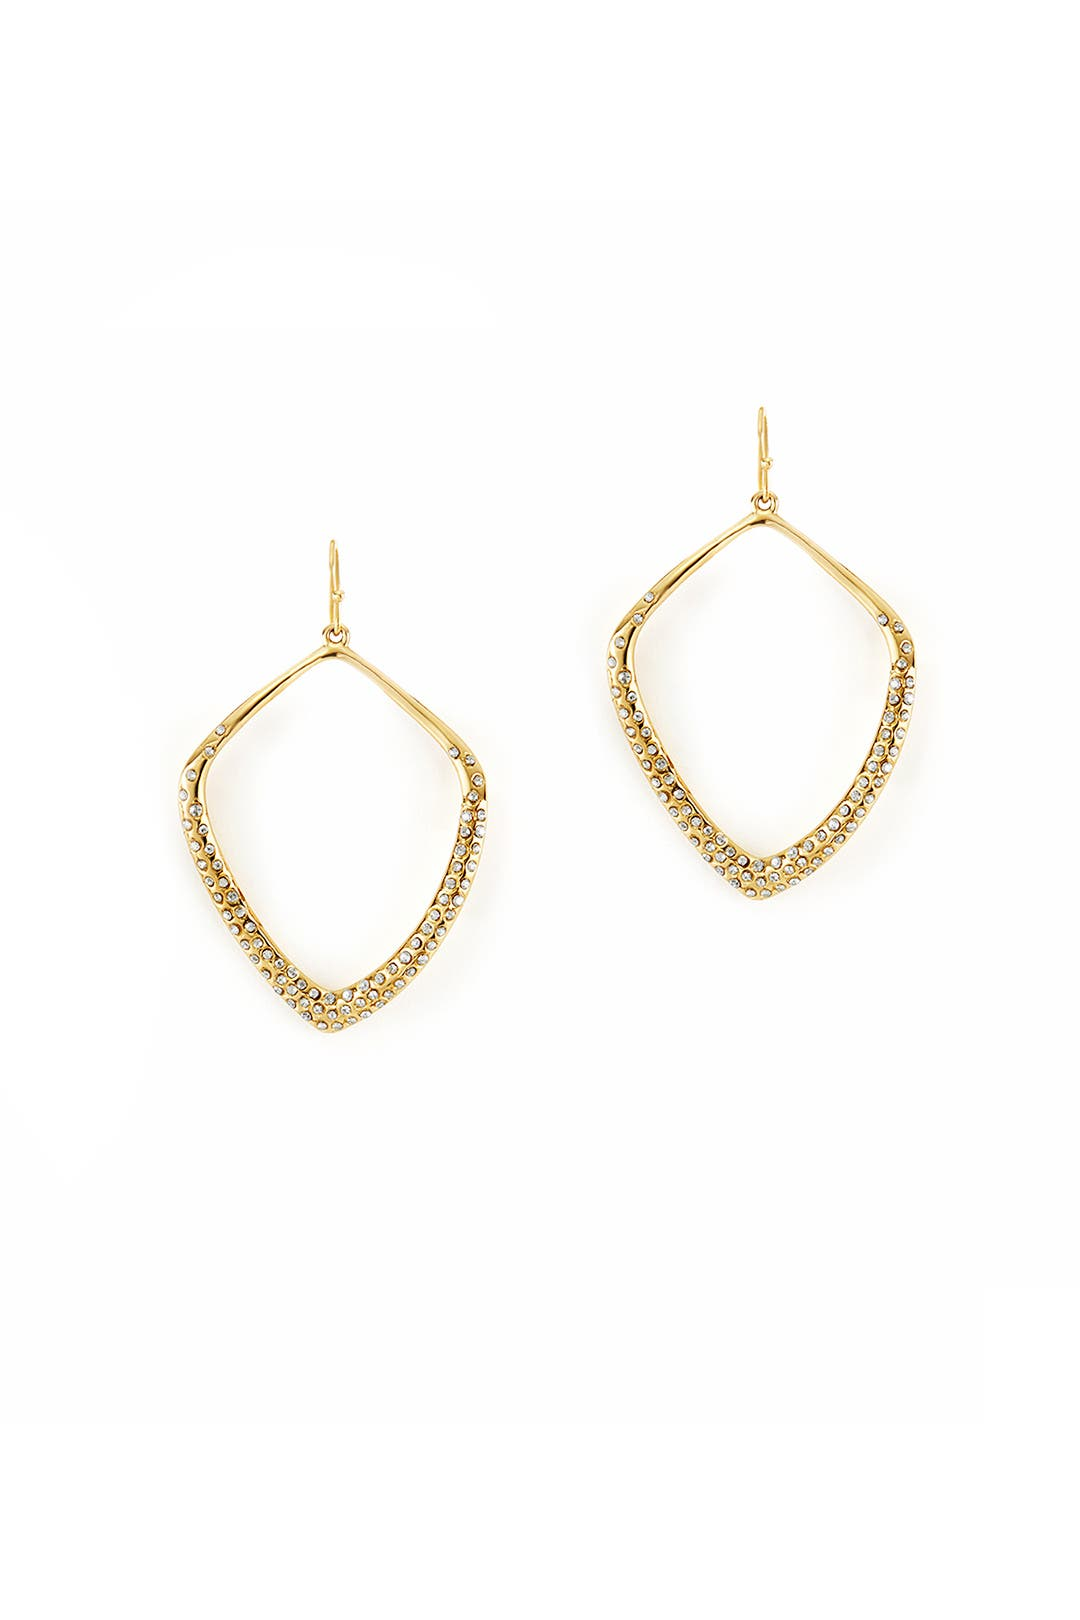 Diamond Circuit Earrings by Alexis Bittar